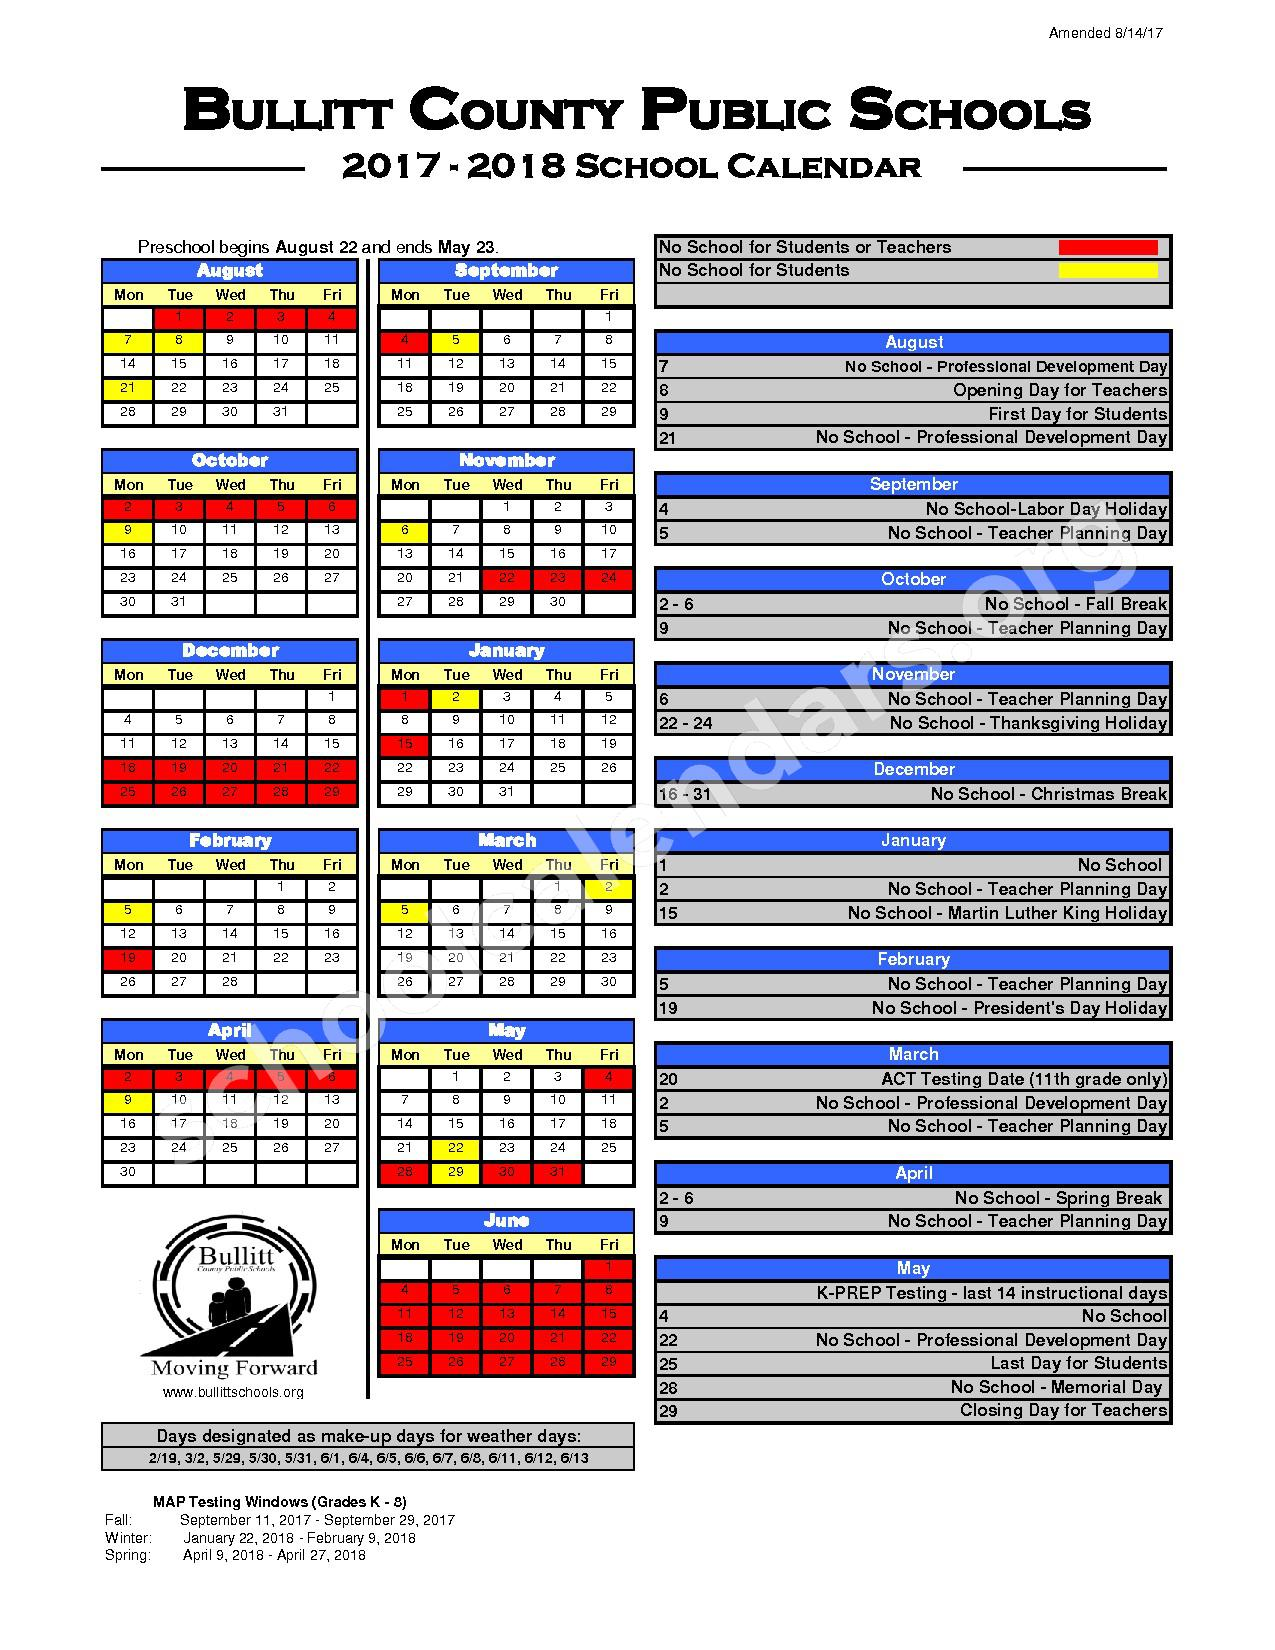 2017 - 2018 District Calendar – Bullitt County School District – page 1